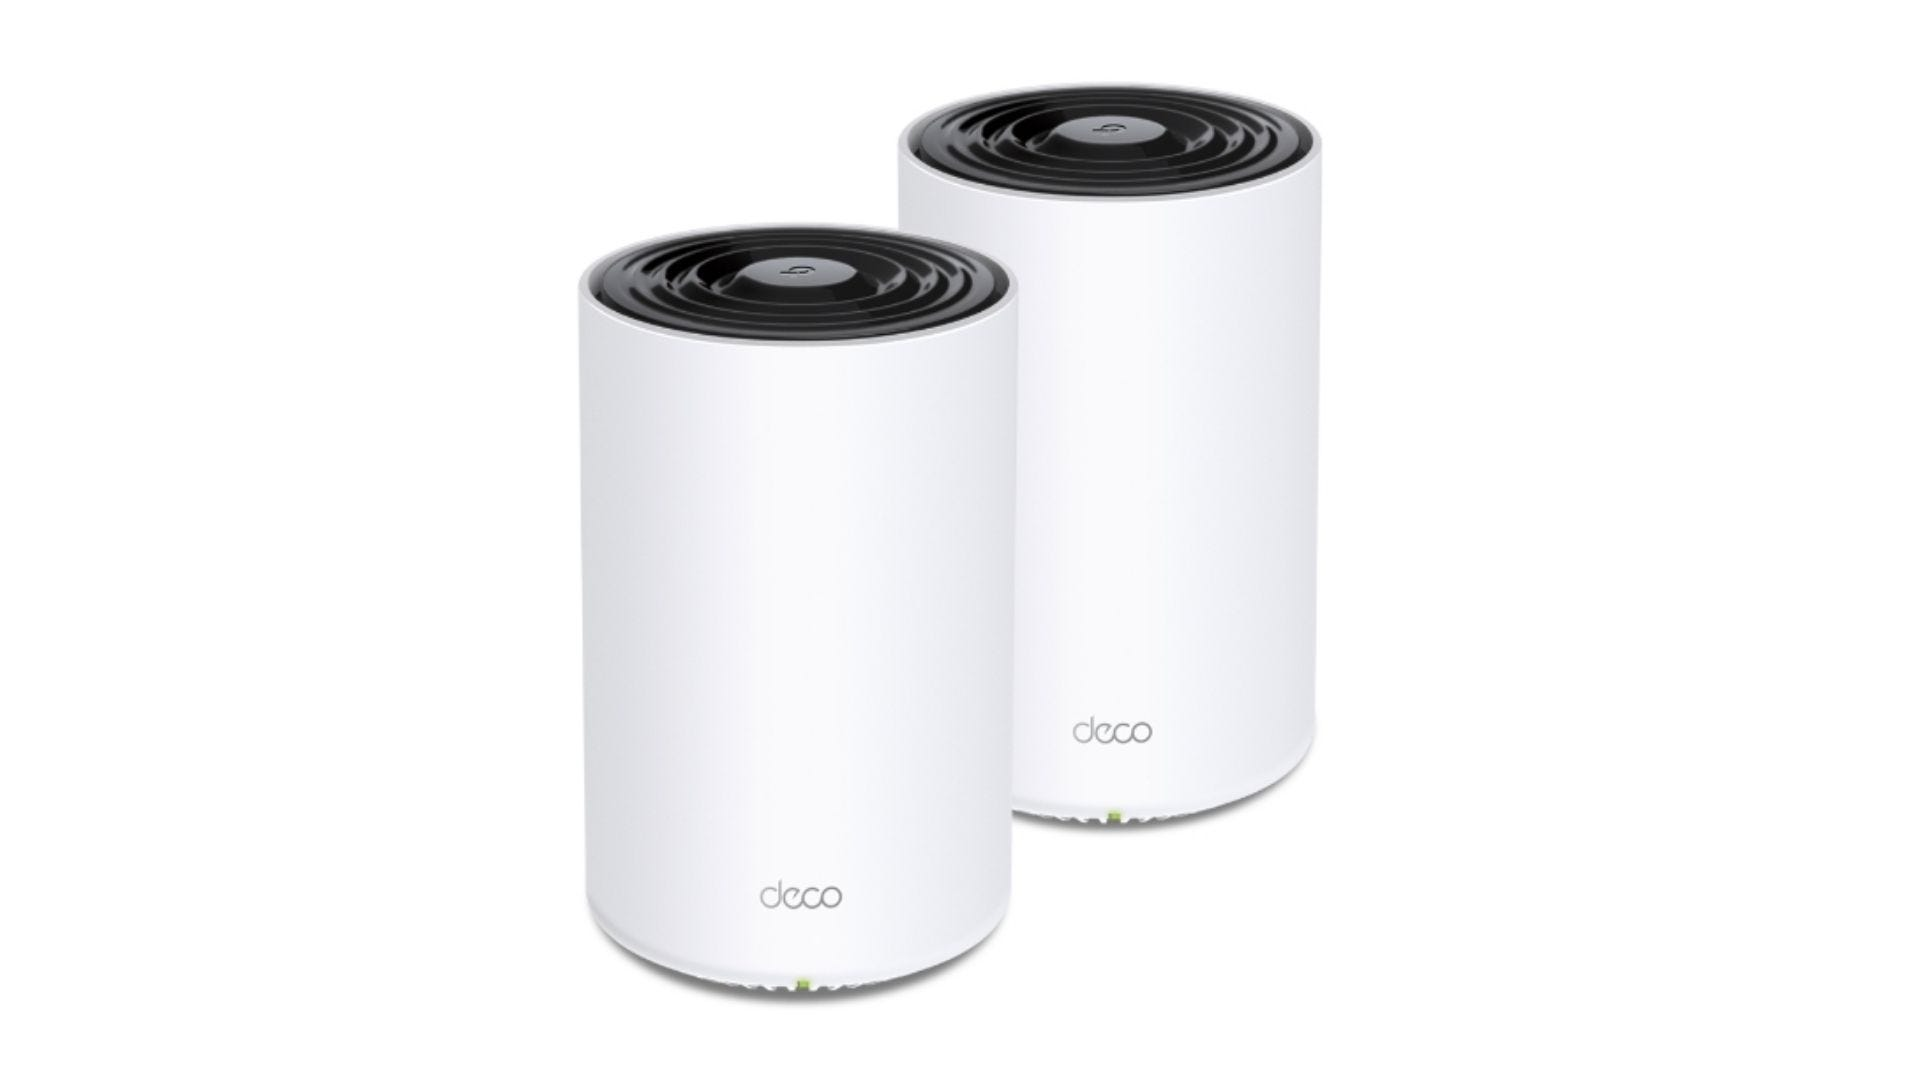 TP-Link Deco X68 New AX3600 Whole Home Mesh WiFi 6 System